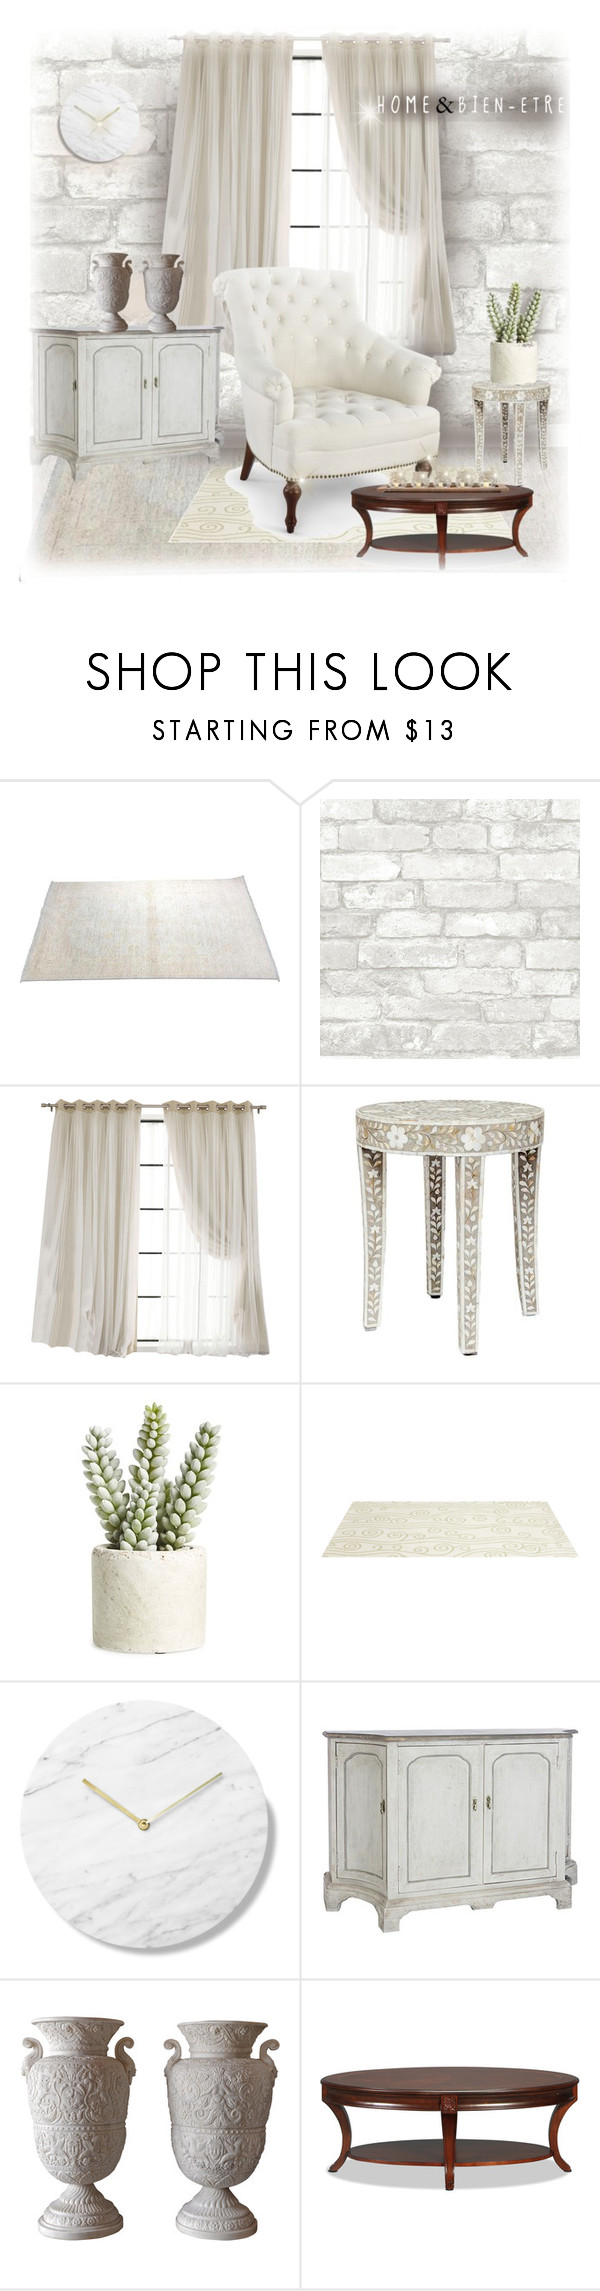 """#tableandchair"" by liligwada ❤ liked on Polyvore featuring interior, interiors, interior design, home, home decor, interior decorating, Allstate Floral, Somerset Bay, Bungalow 5 and Pomeroy"